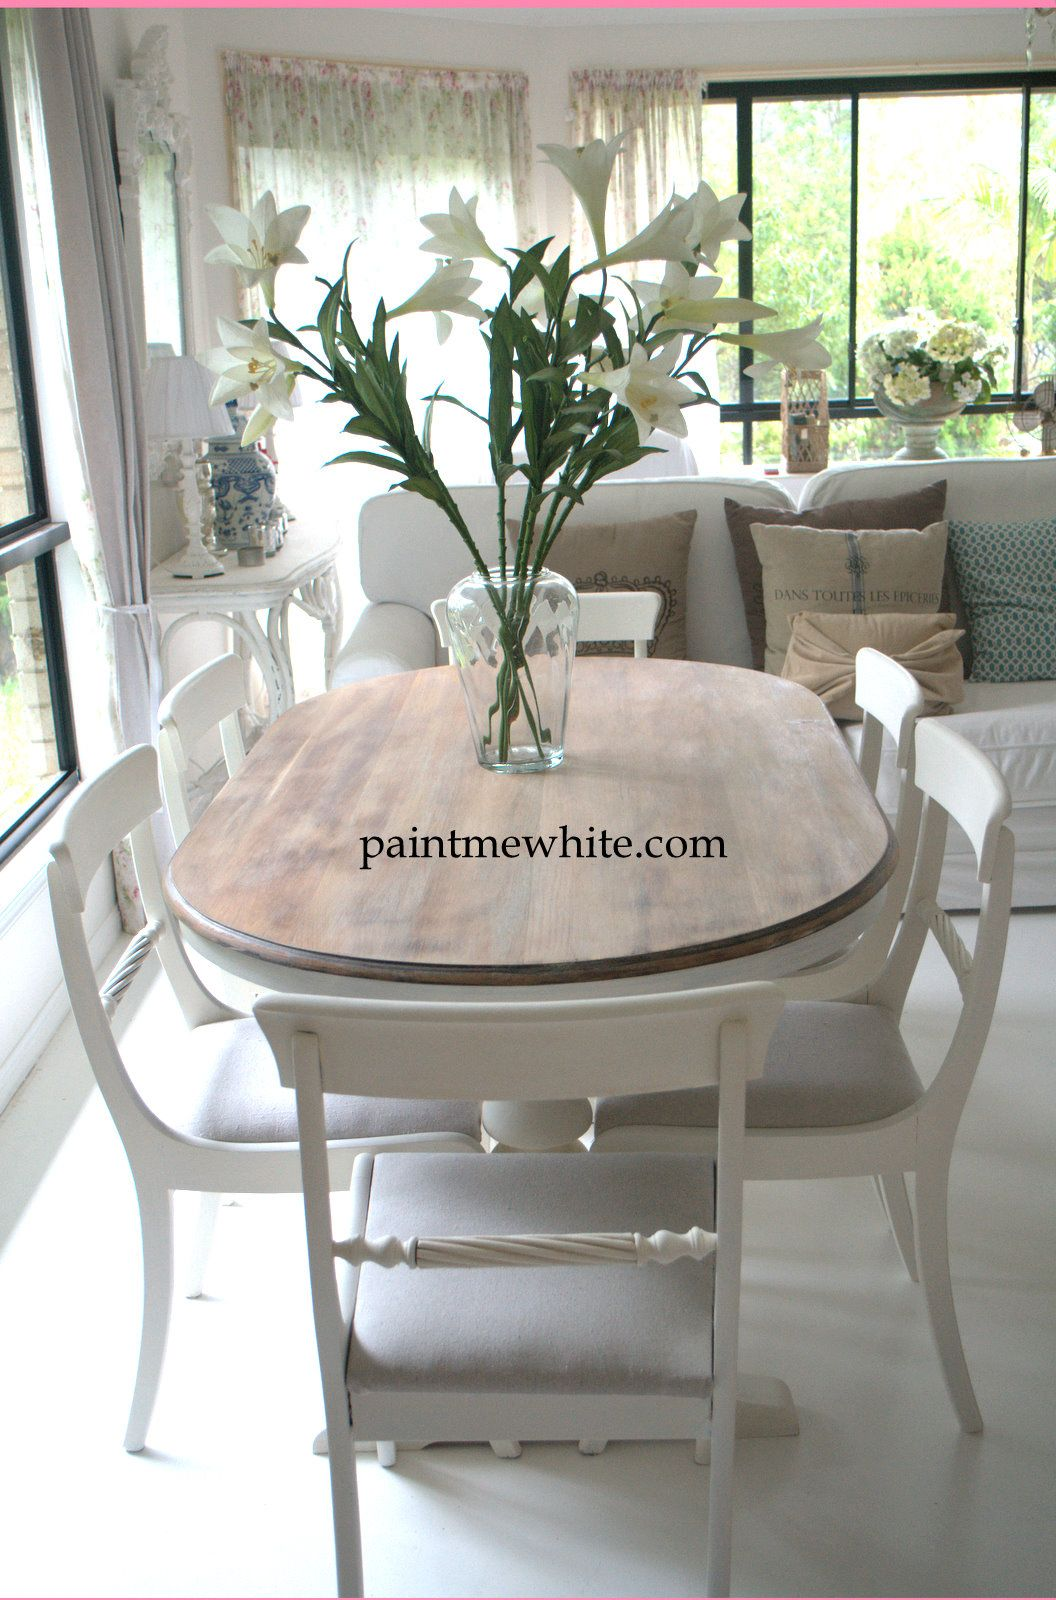 white painted table and chairs rv furniture dining makeover whitewash top